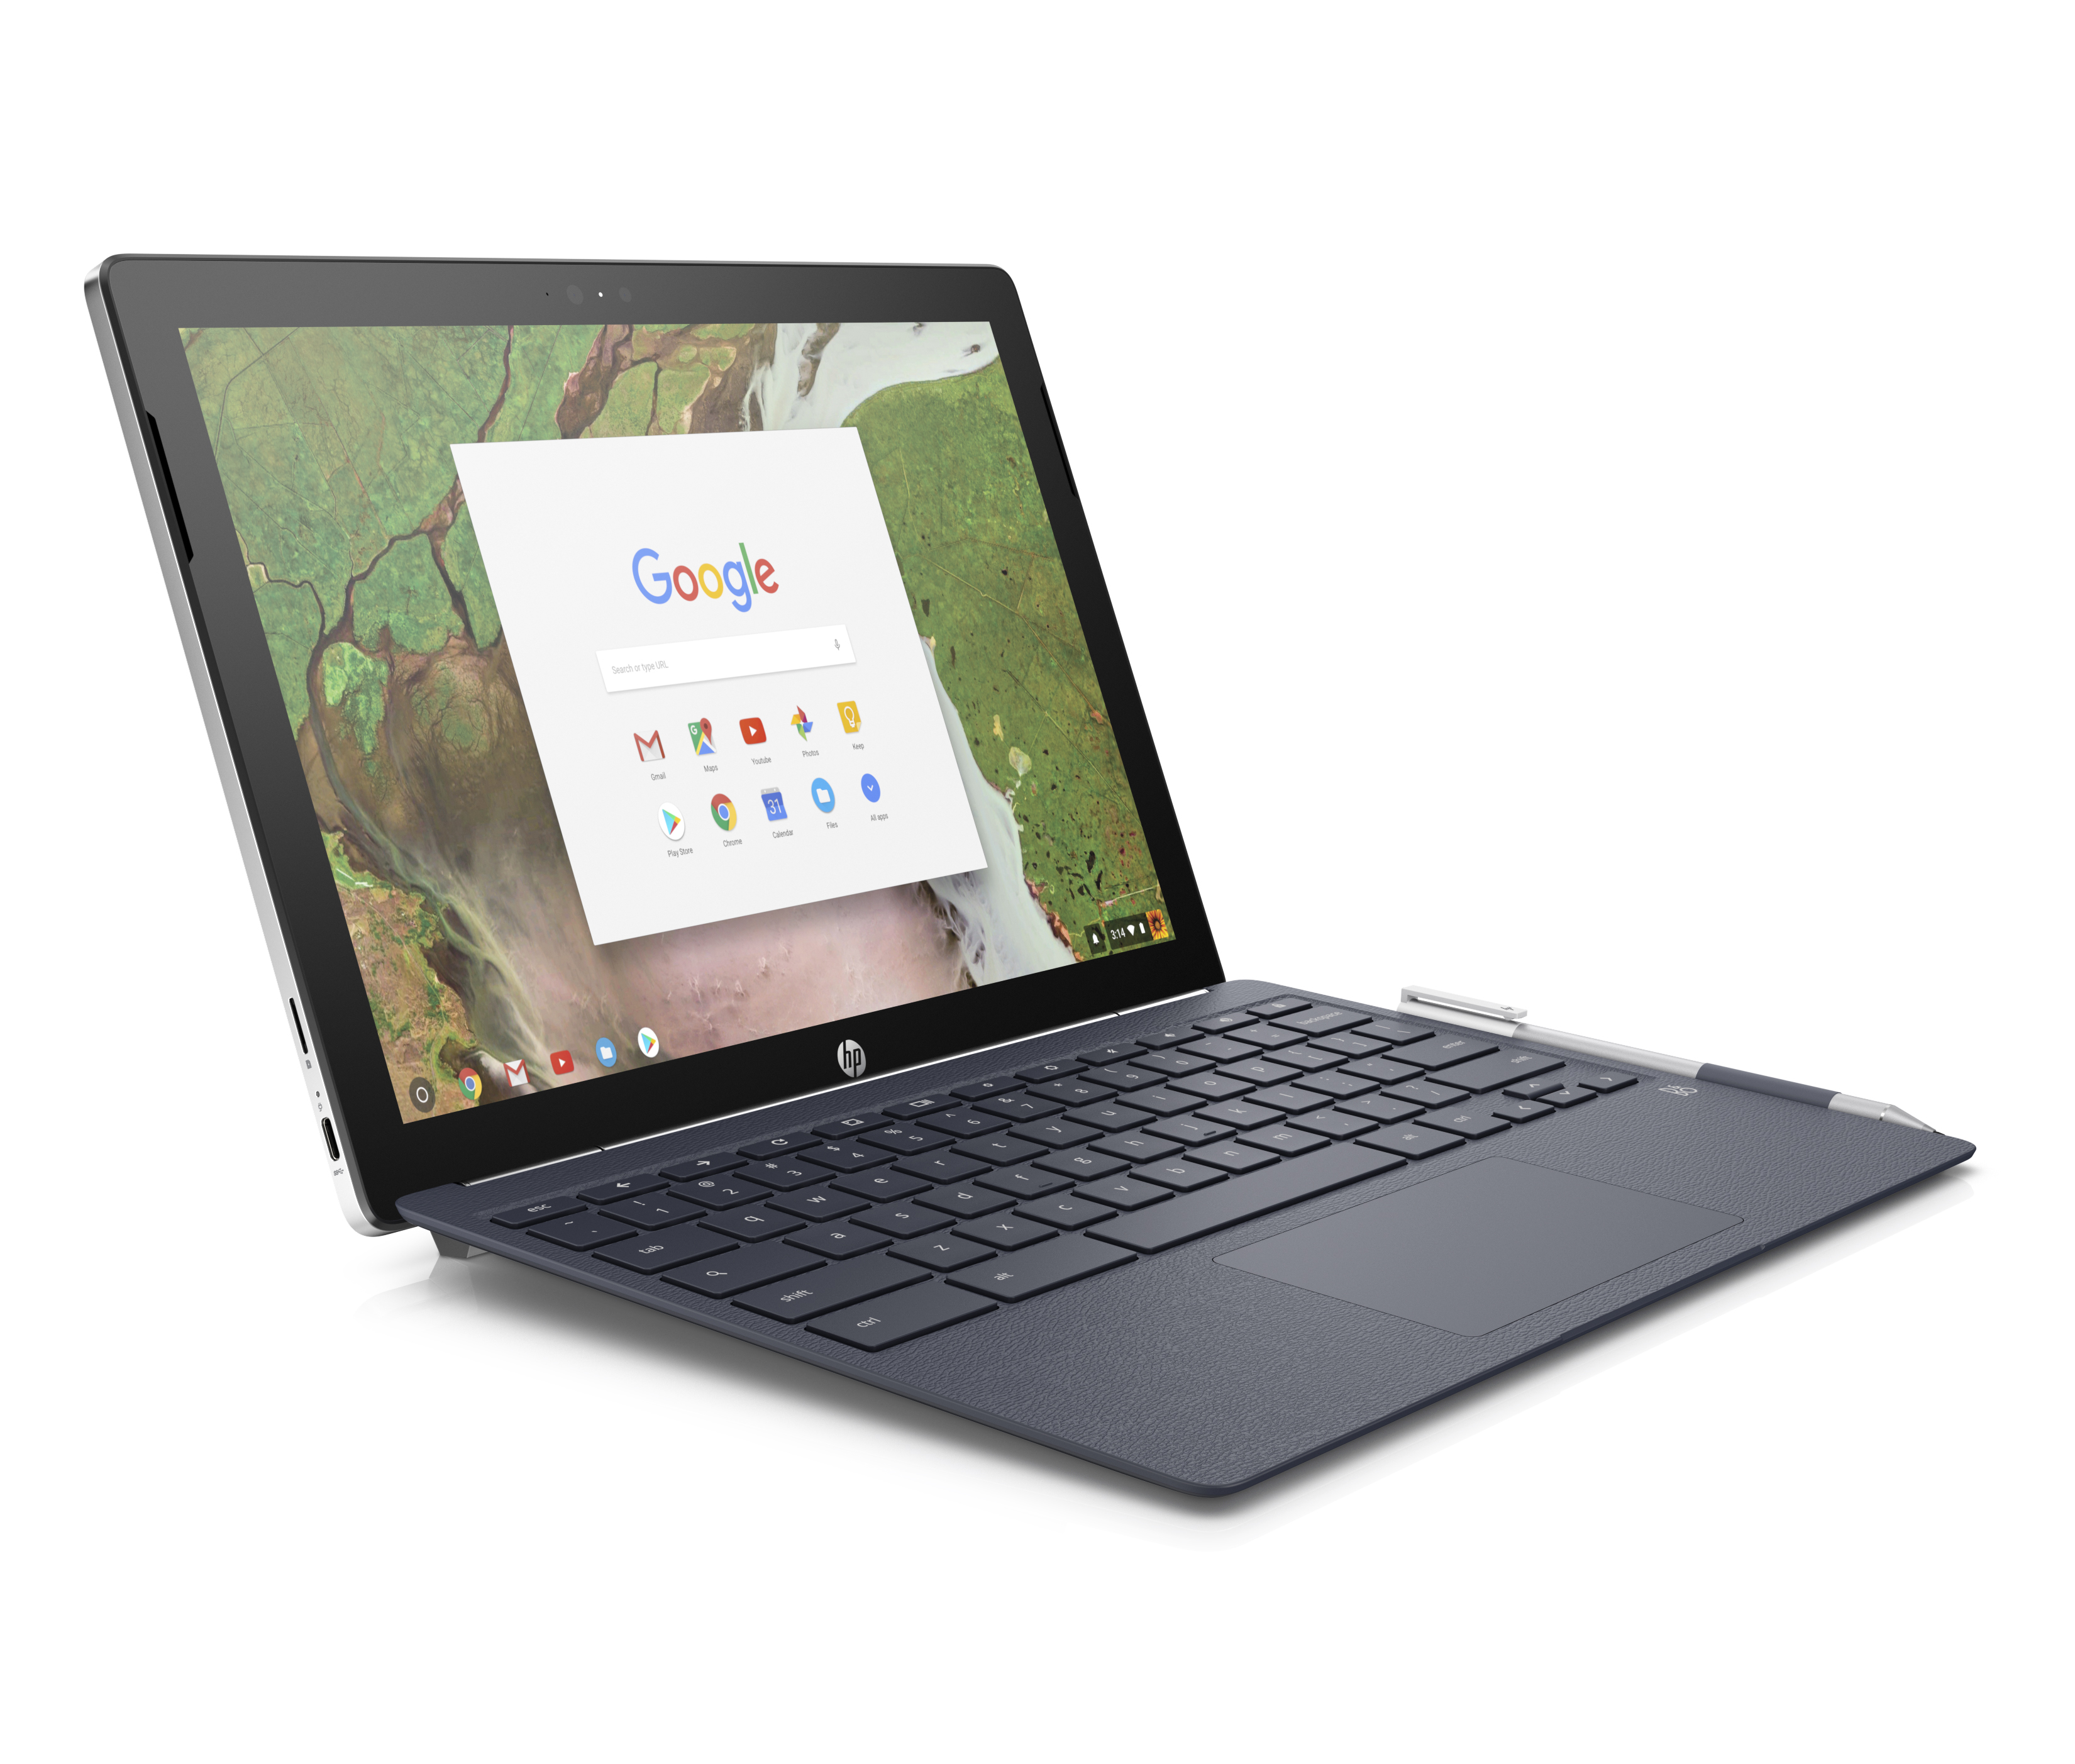 HP goes up against the iPad Pro with its $599 Chromebook x2 - The Verge